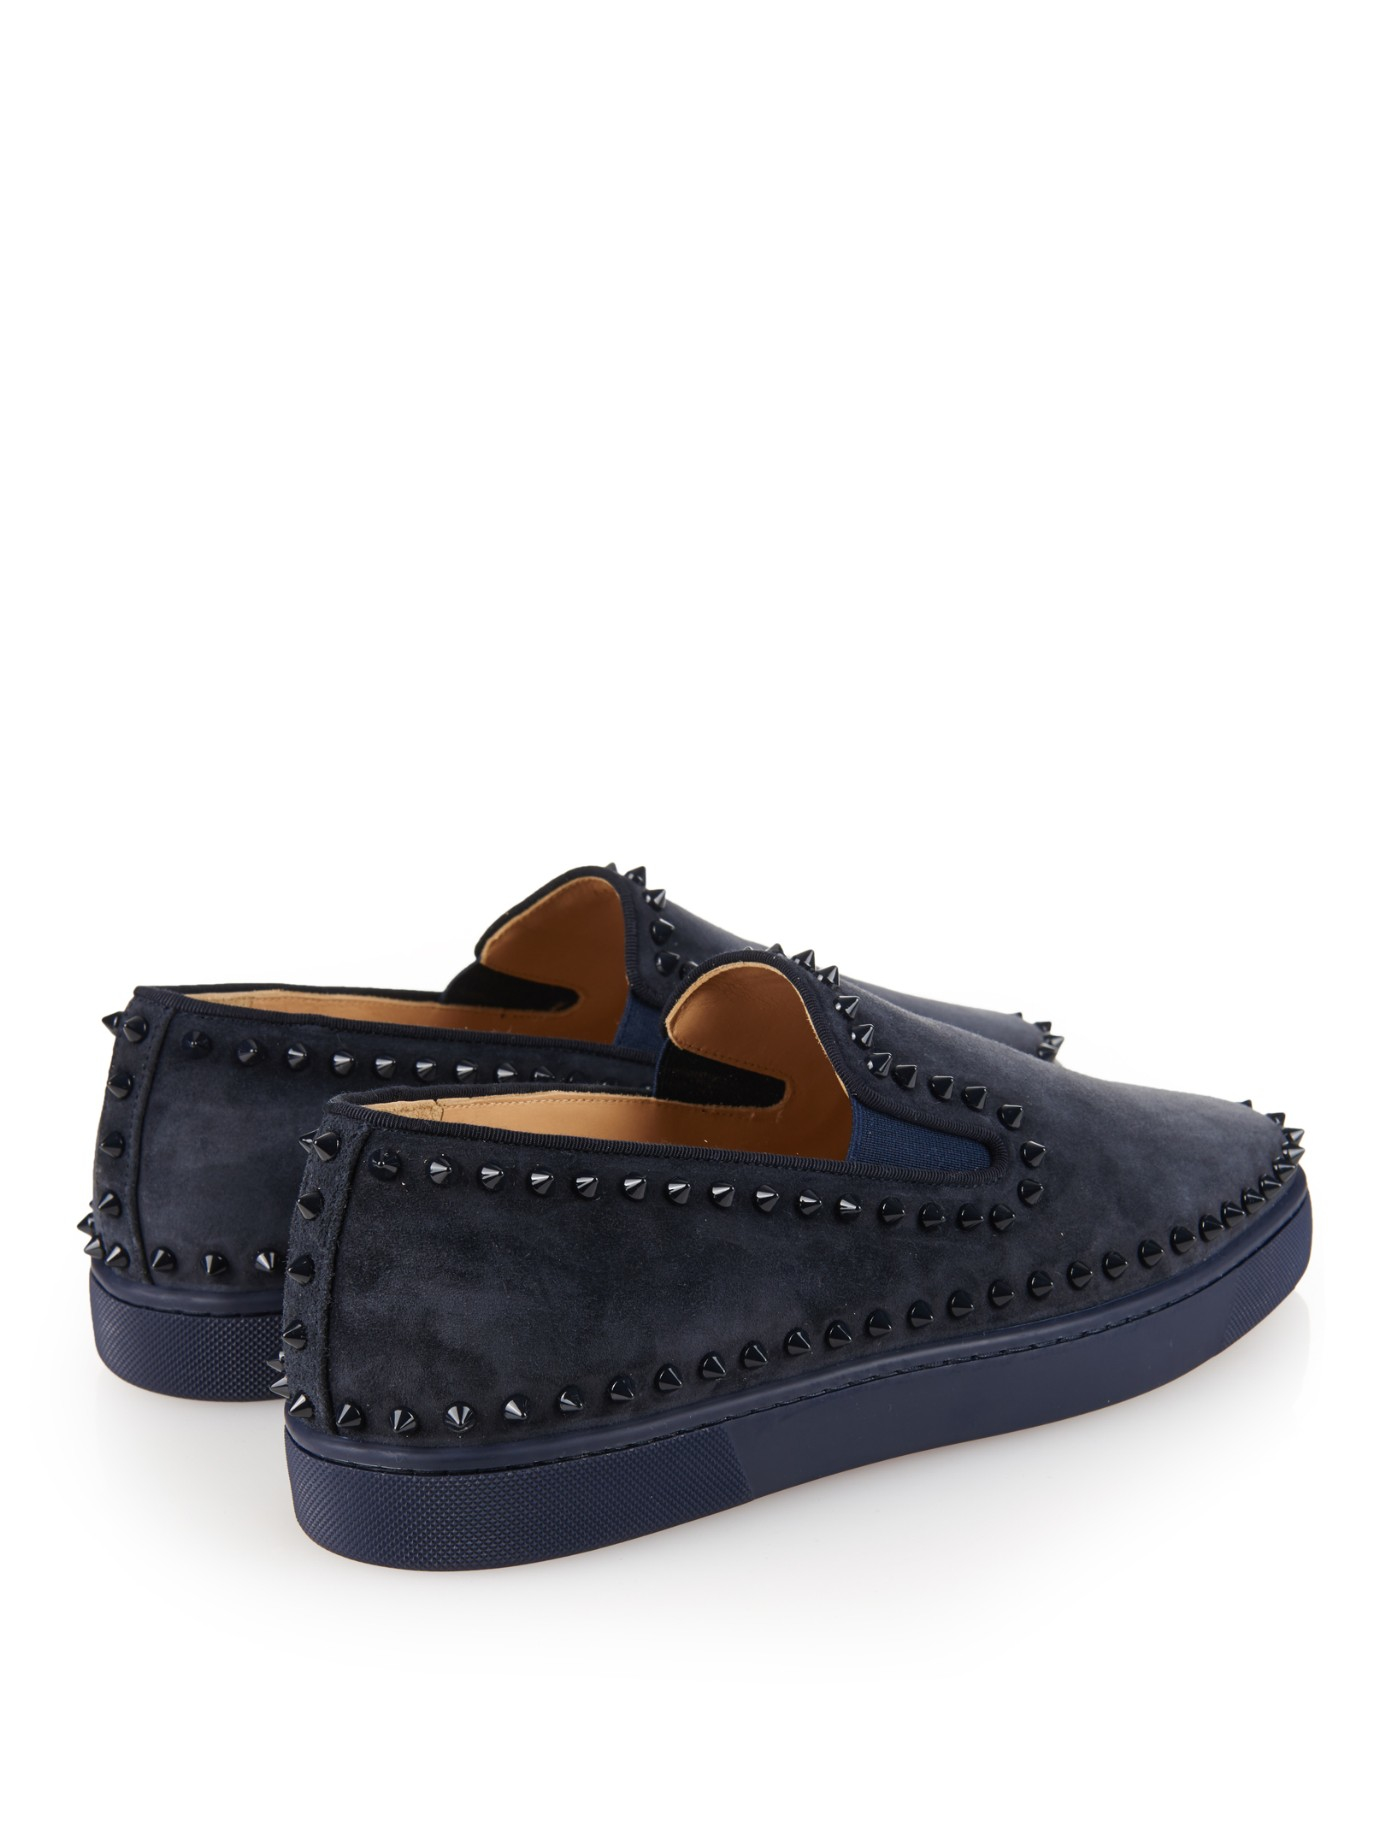 christian louboutin imitations - christian louboutin pik boat men\u0026#39;s flat | cosmetics digital ...